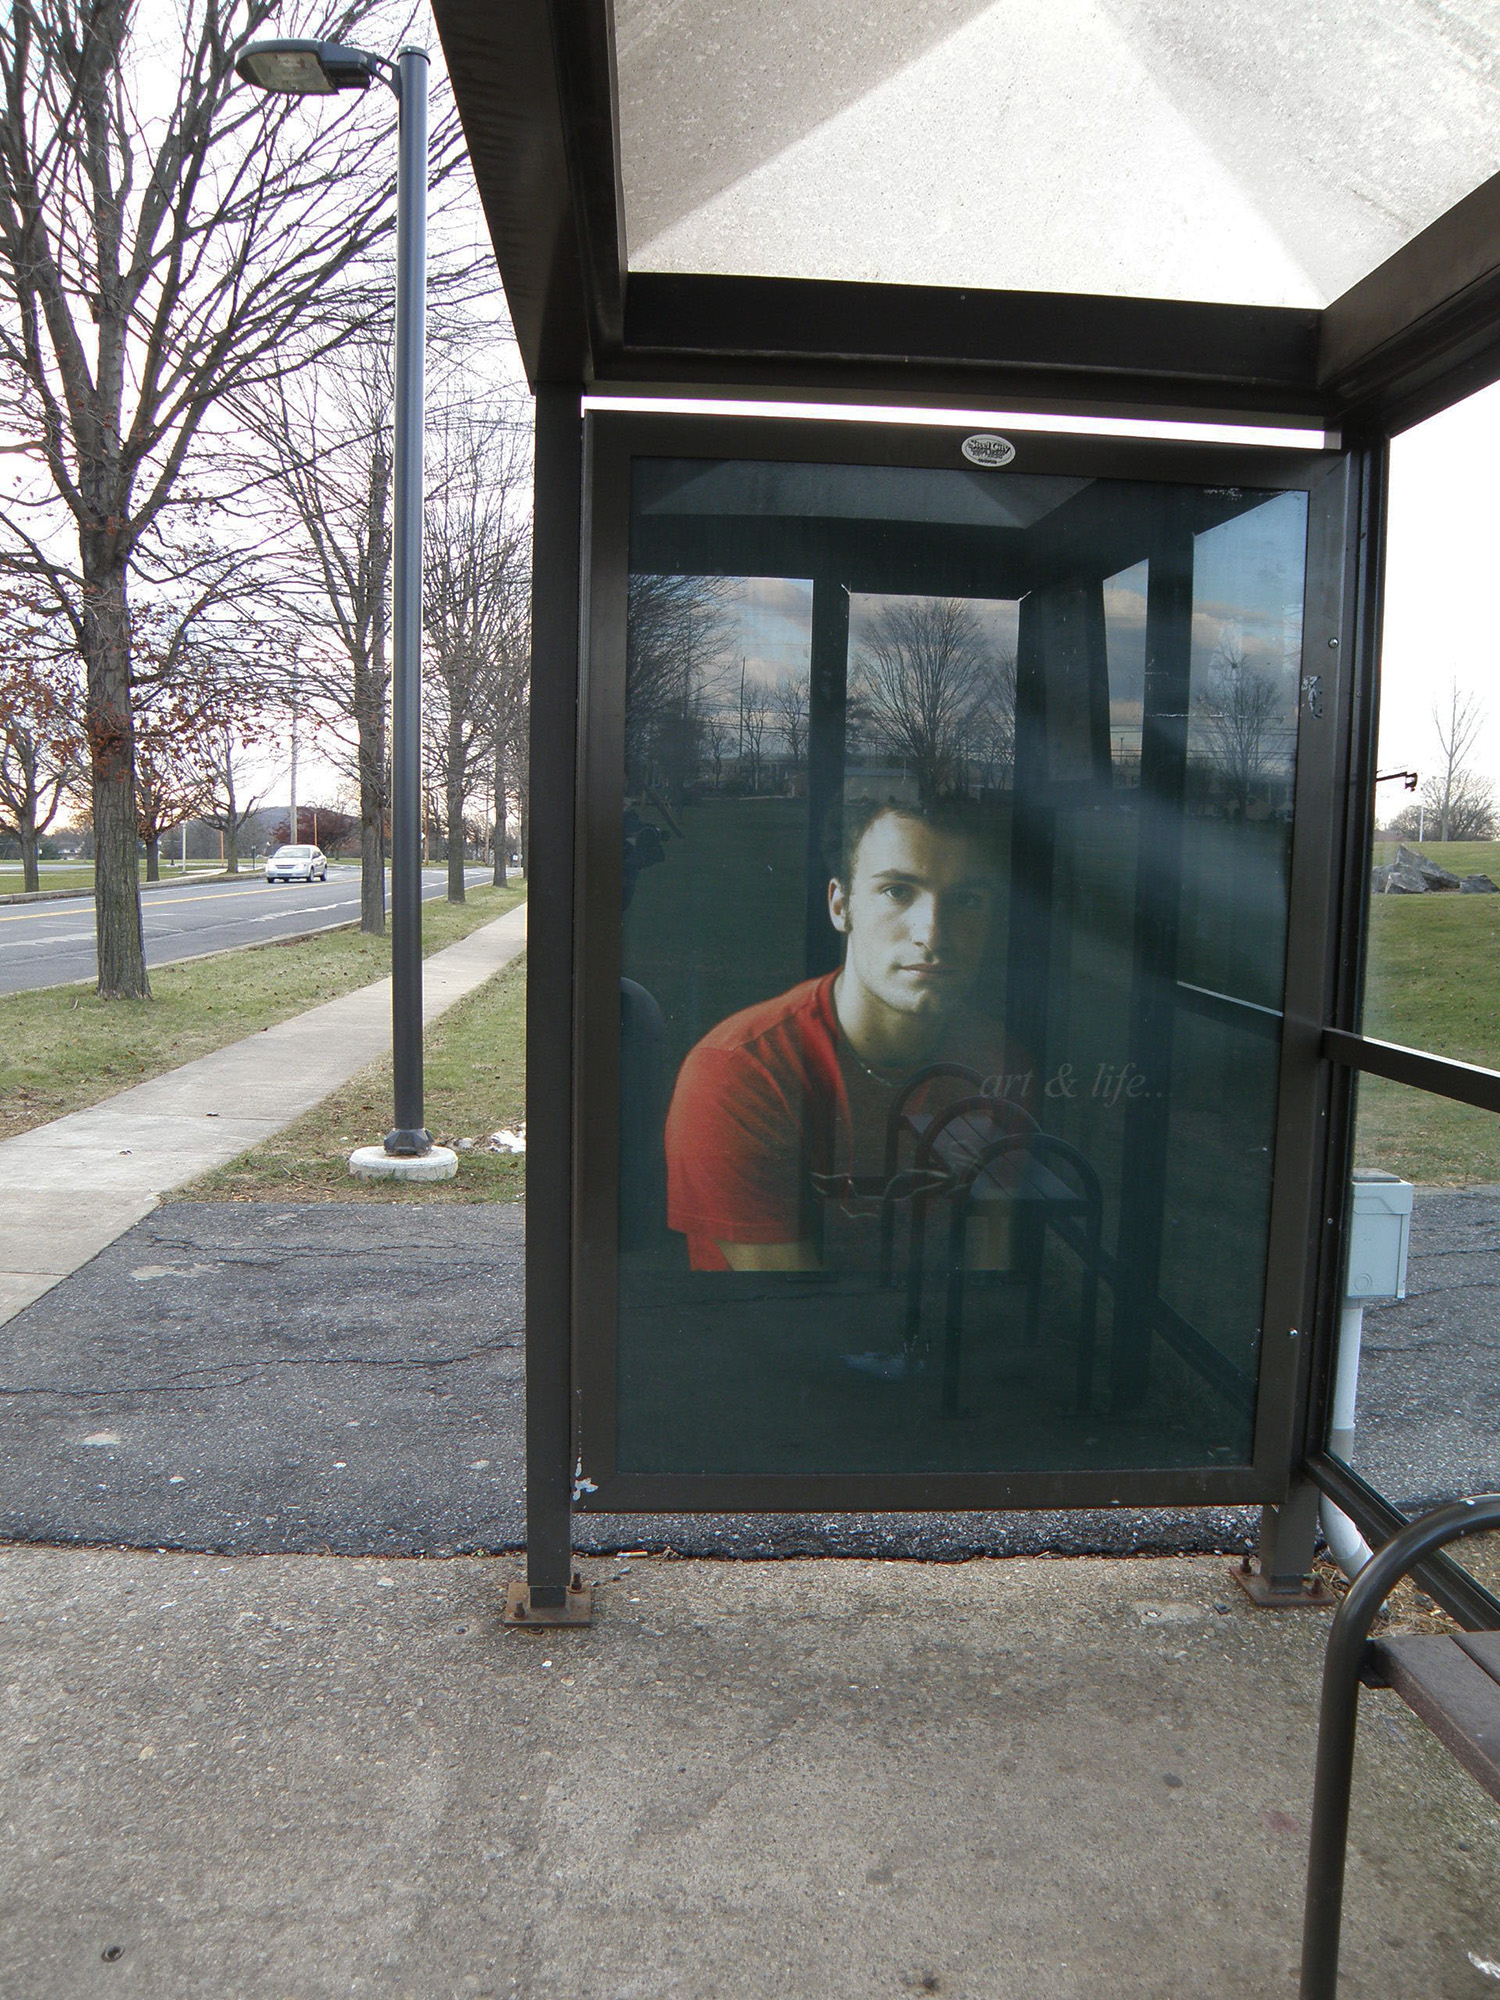 Art & Life, 1/11 Bus Shelters, Lehigh Valley, PA  2010